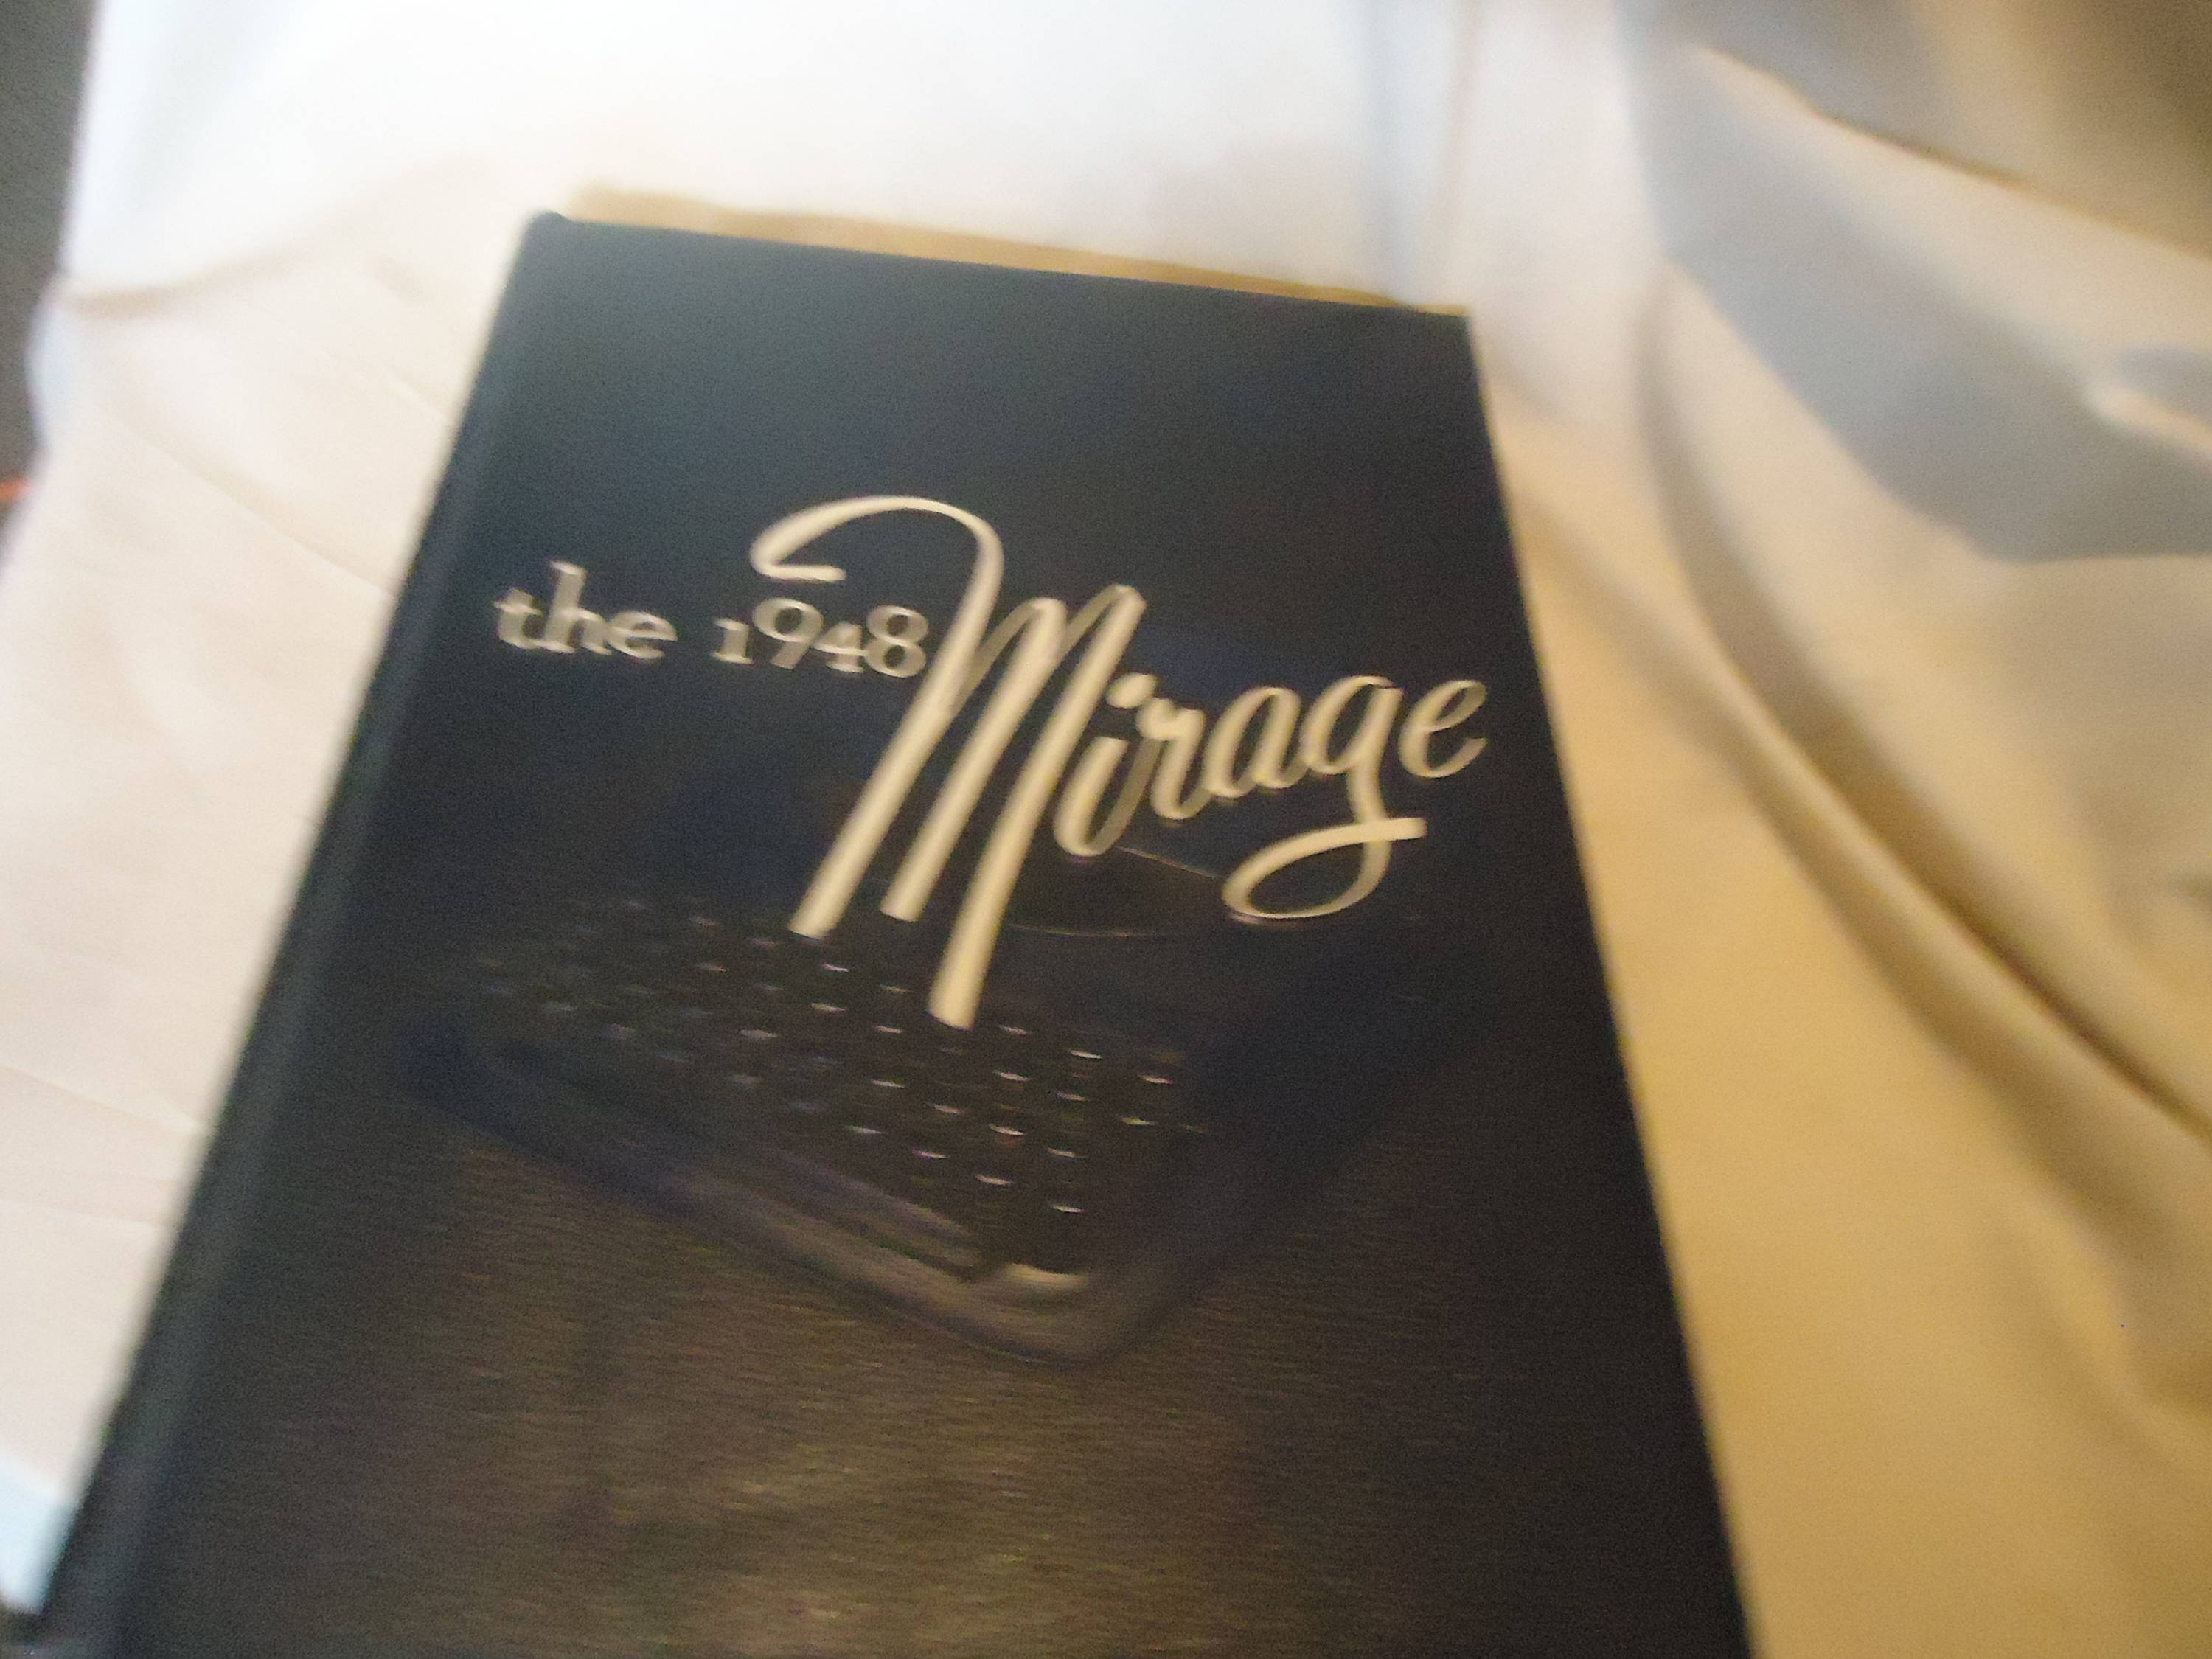 Vintage 1948 The Mirage DePauw University Yearbook or Annual Greencastle Indiana, collectable